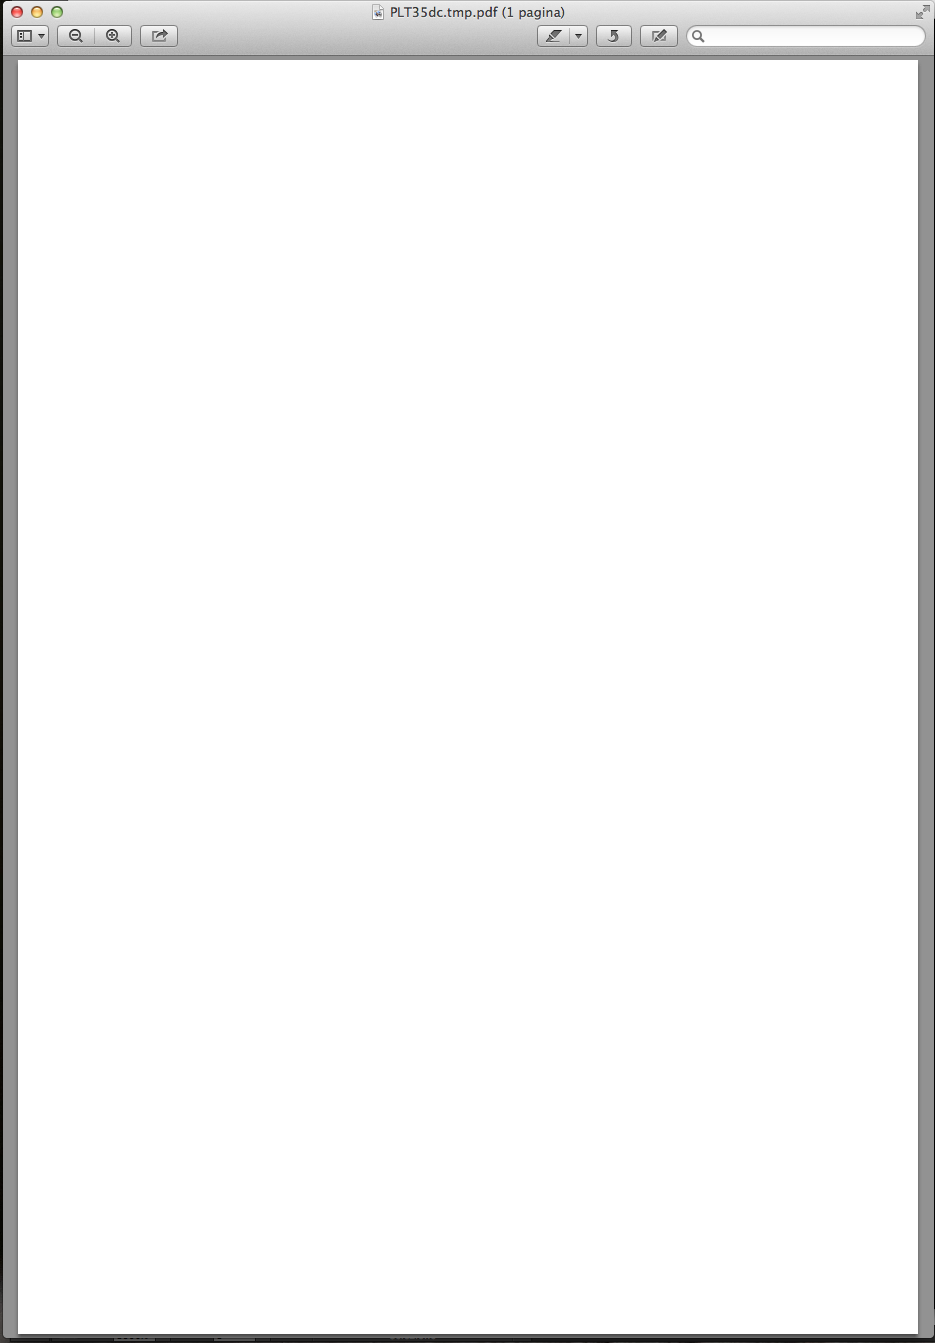 Solved: Autocad print blank page - Autodesk Community